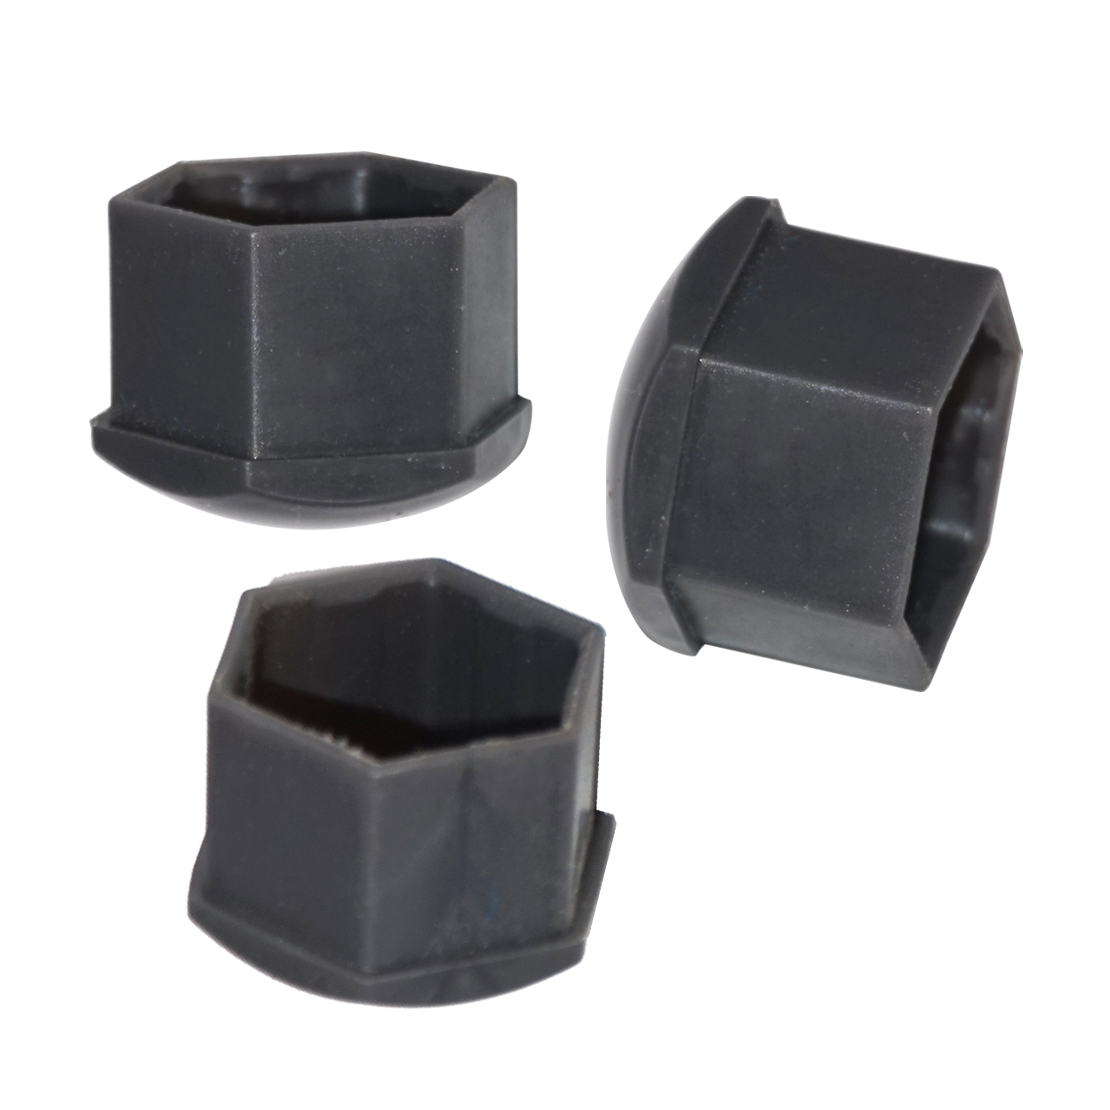 16x 17mm Wheel Lug Nut Bolt Cap Amp 4x 25mm Locking Types